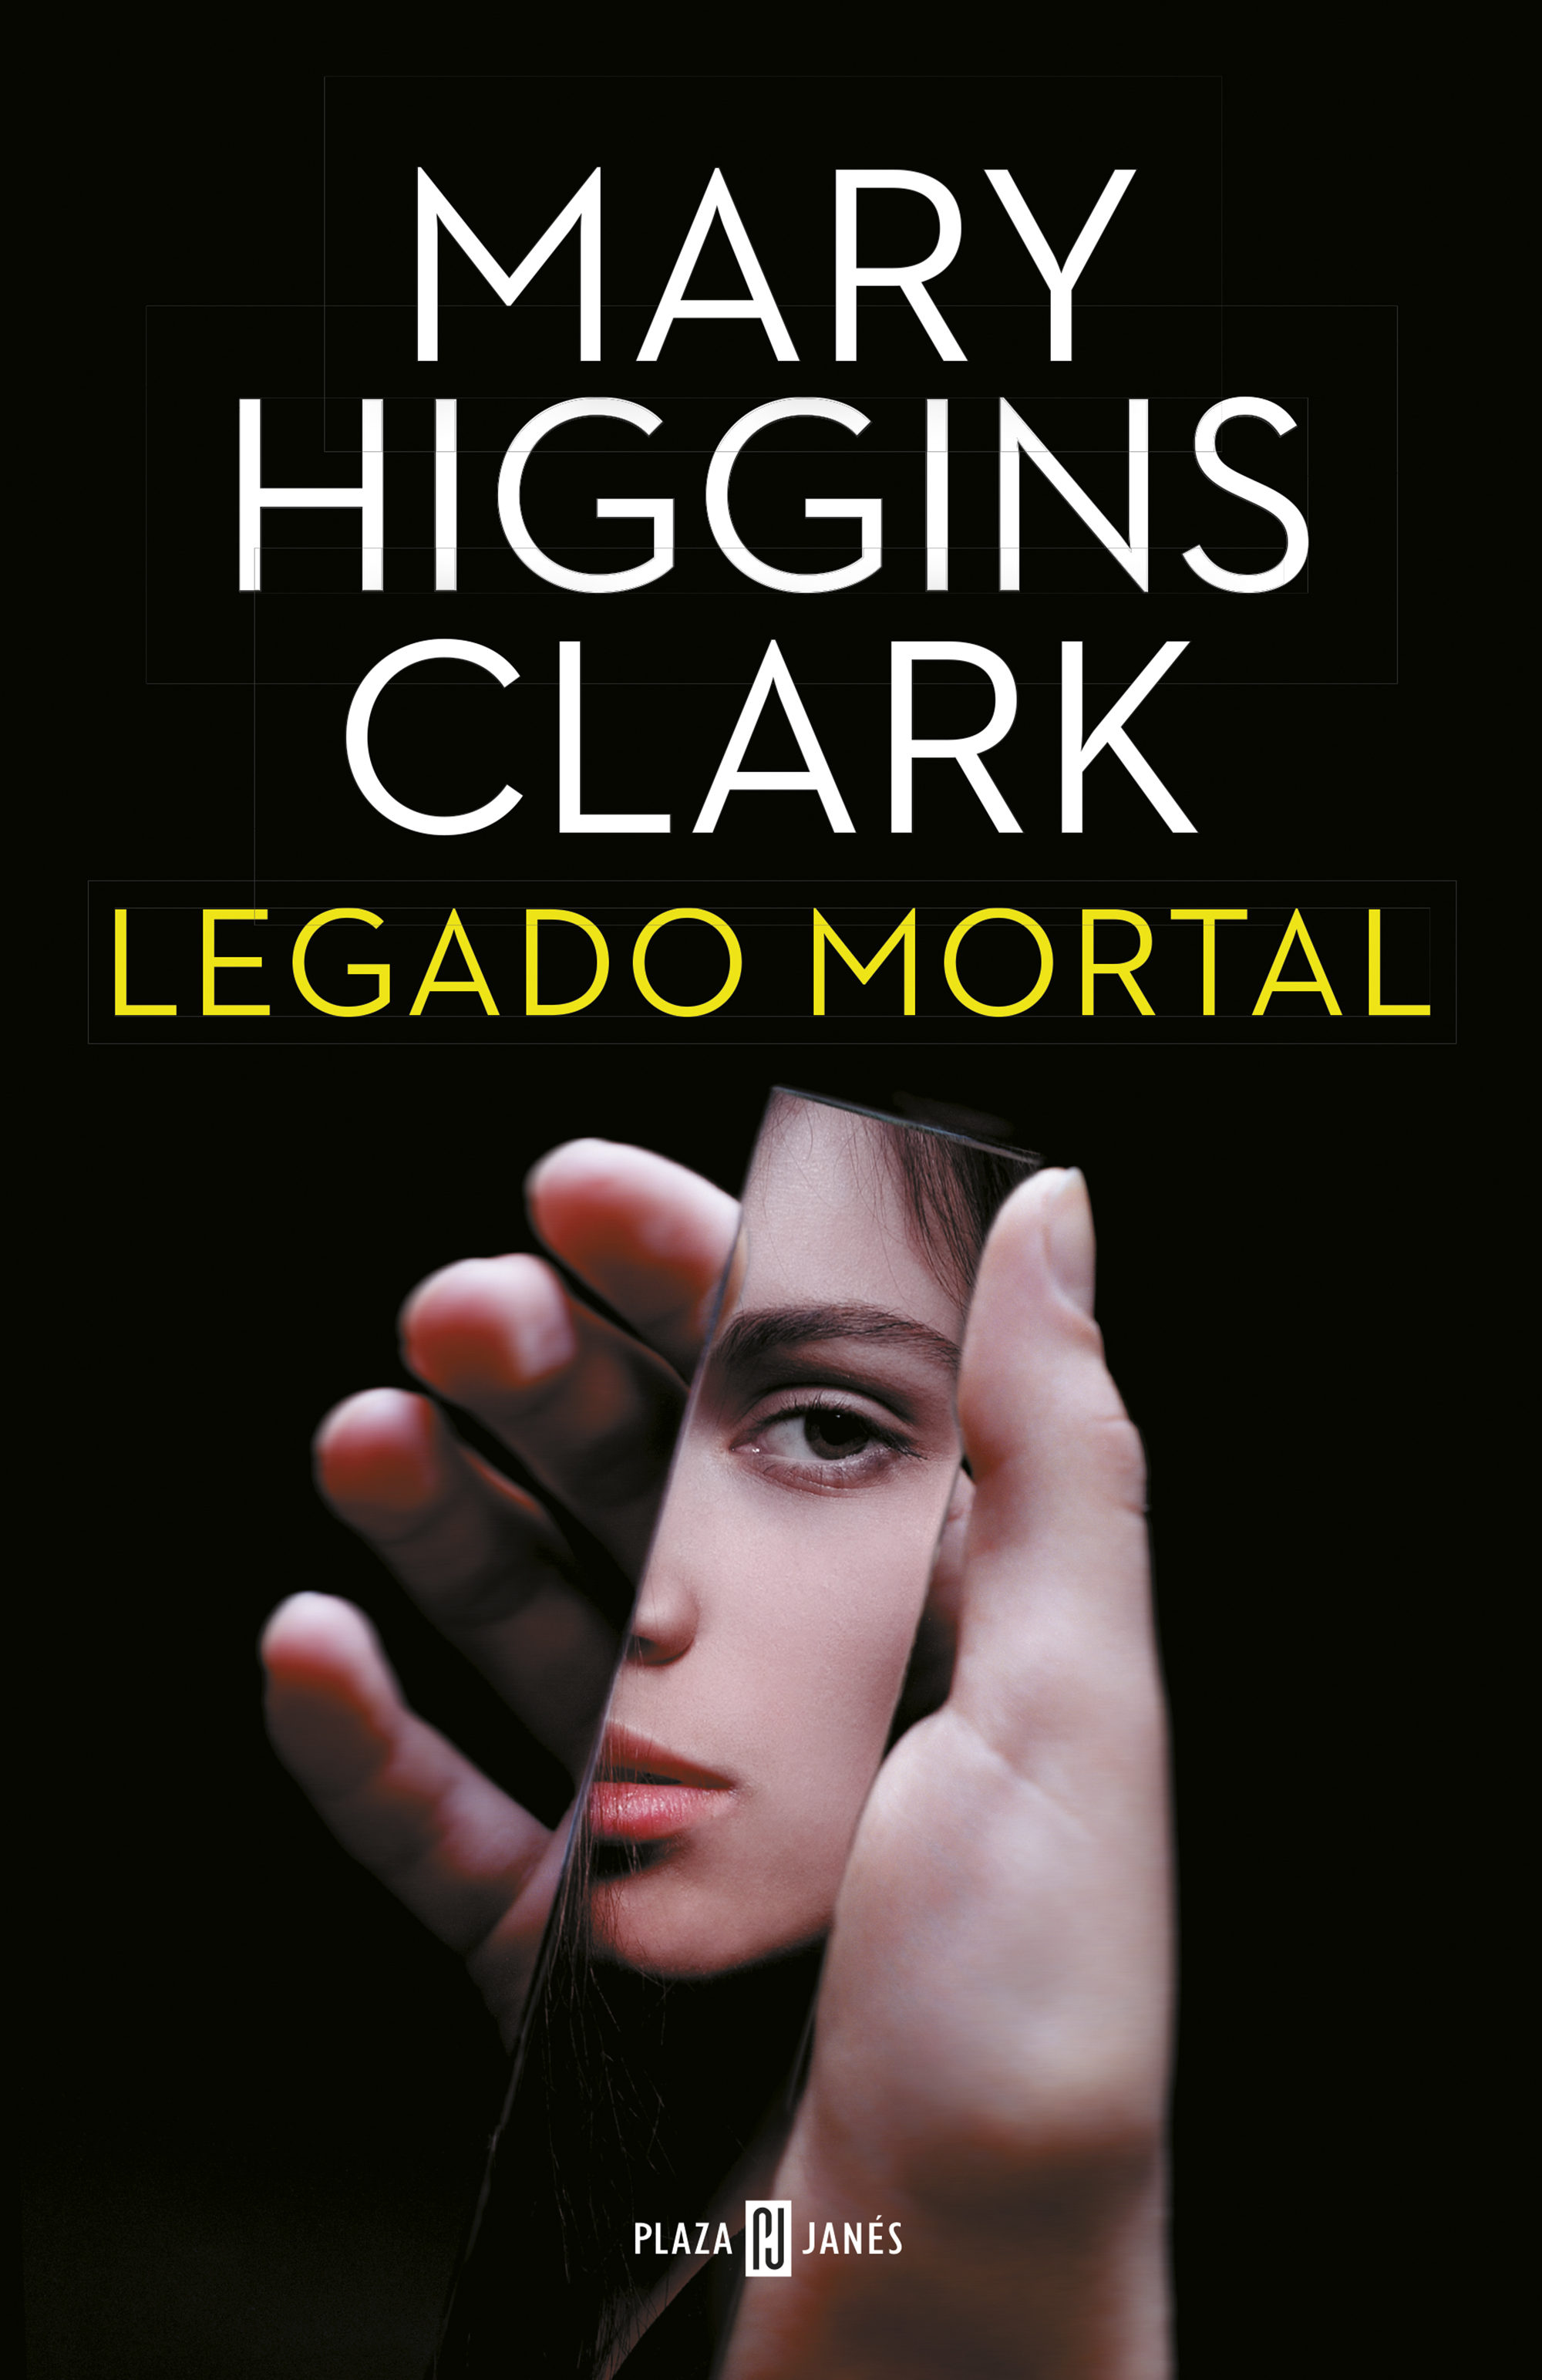 Viento Mortal Libro Legado Mortal Ebook Mary Higgins Clark Descargar Libro Pdf O Epub 9788401018220